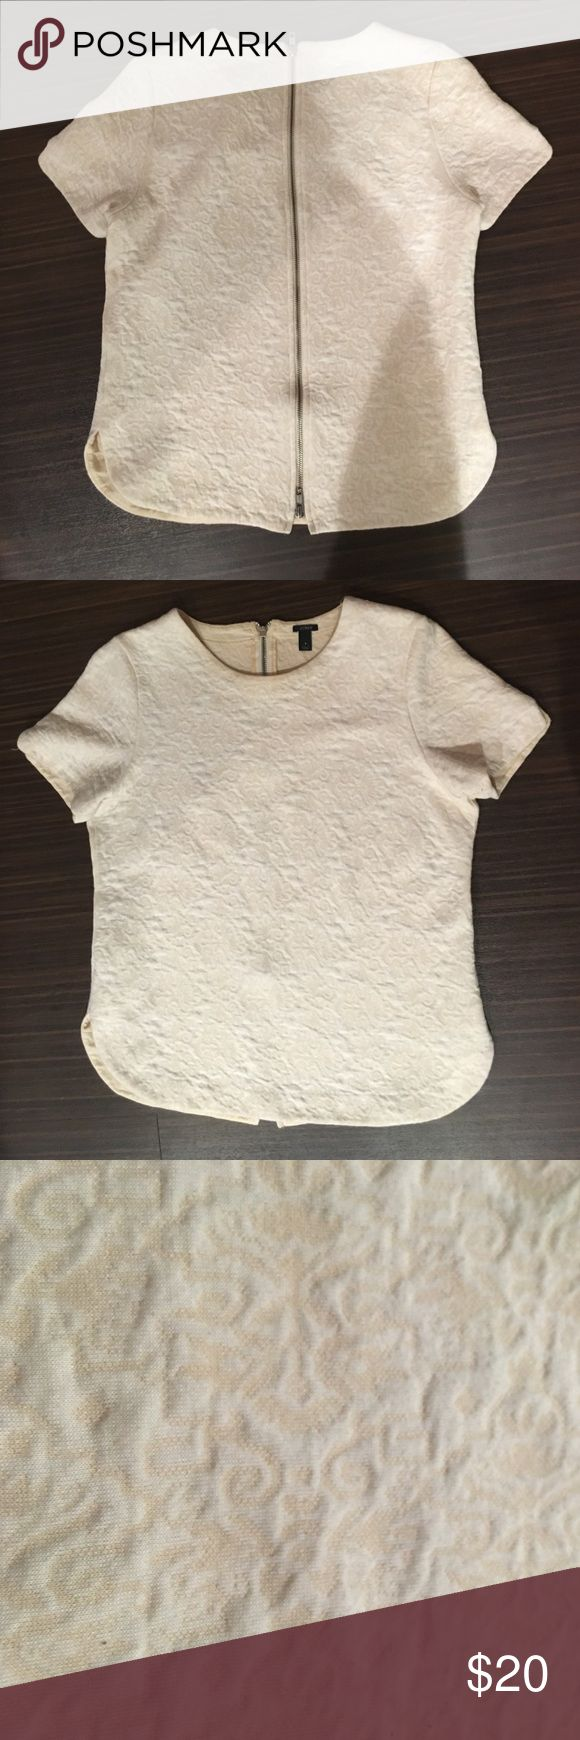 J. Crew cream short-sleeved top with zip-up back J. Crew cream short-sleeved top with silver zipper up the back. Lace-like print. This is a lightweight sweatshirt fabric with rounded hem. Size small. 80% cotton. 20% polyester. J. Crew Tops